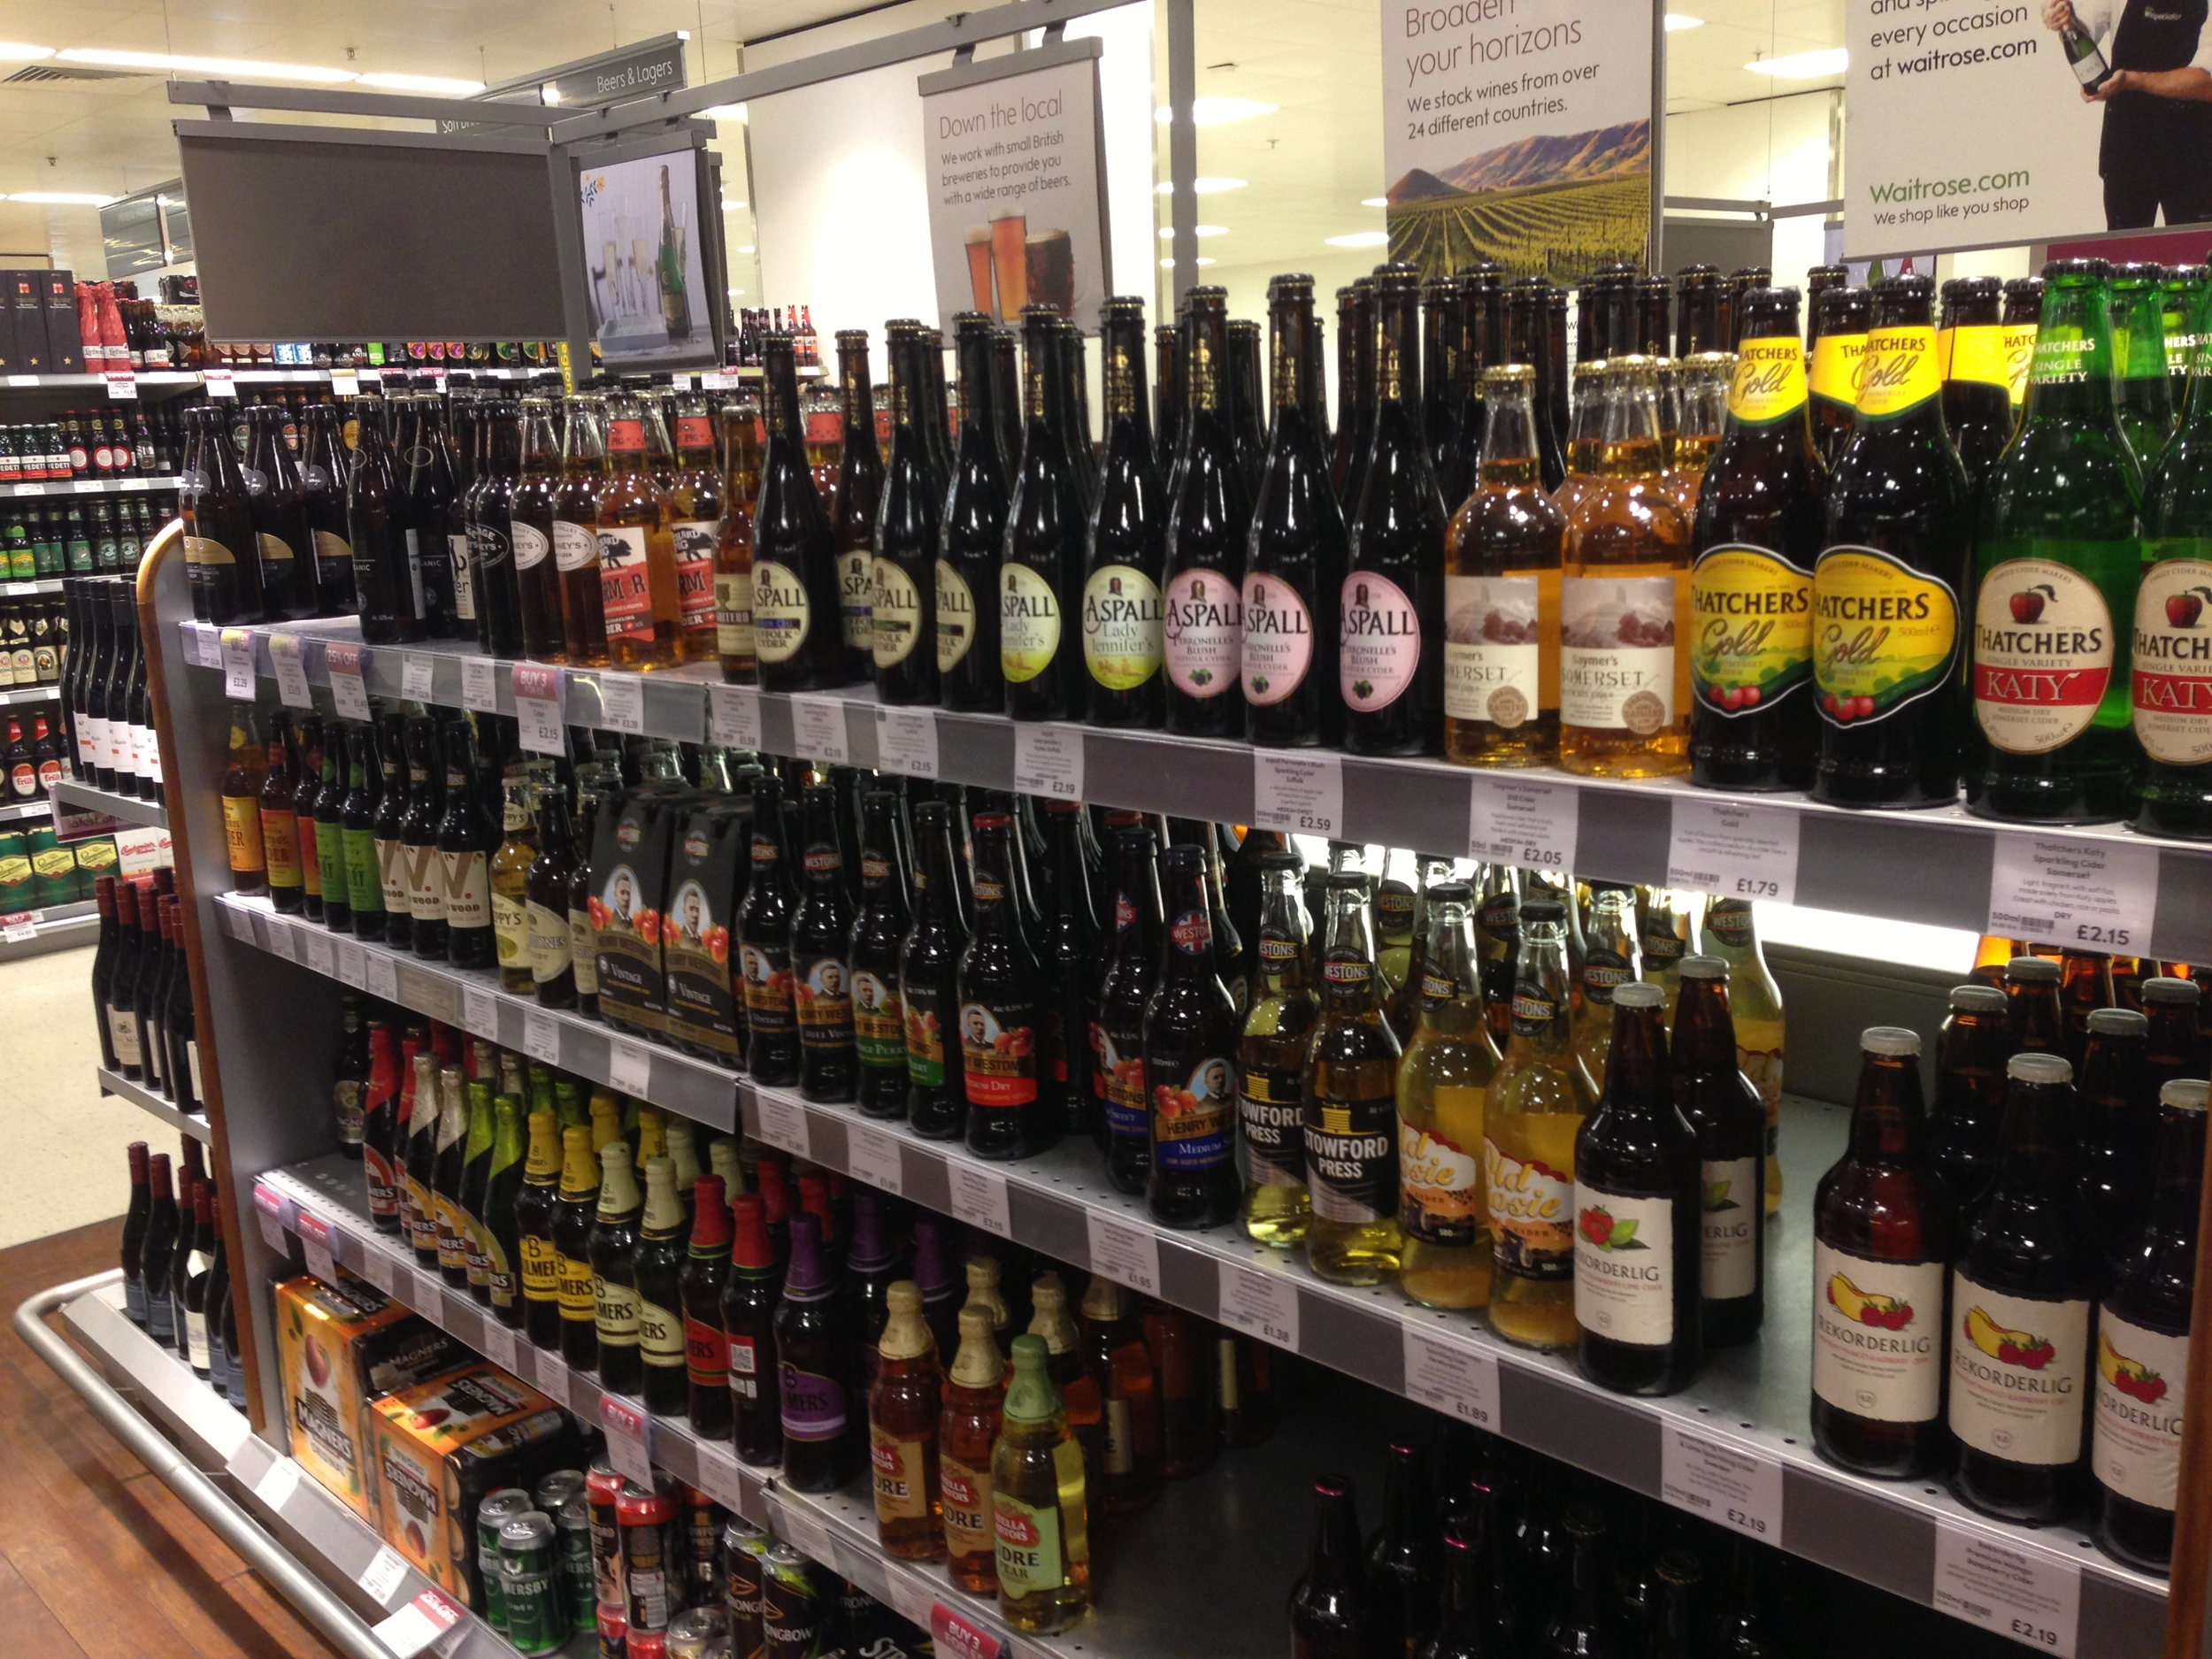 Waitrose love me back, please! You and all your beautiful ciders.